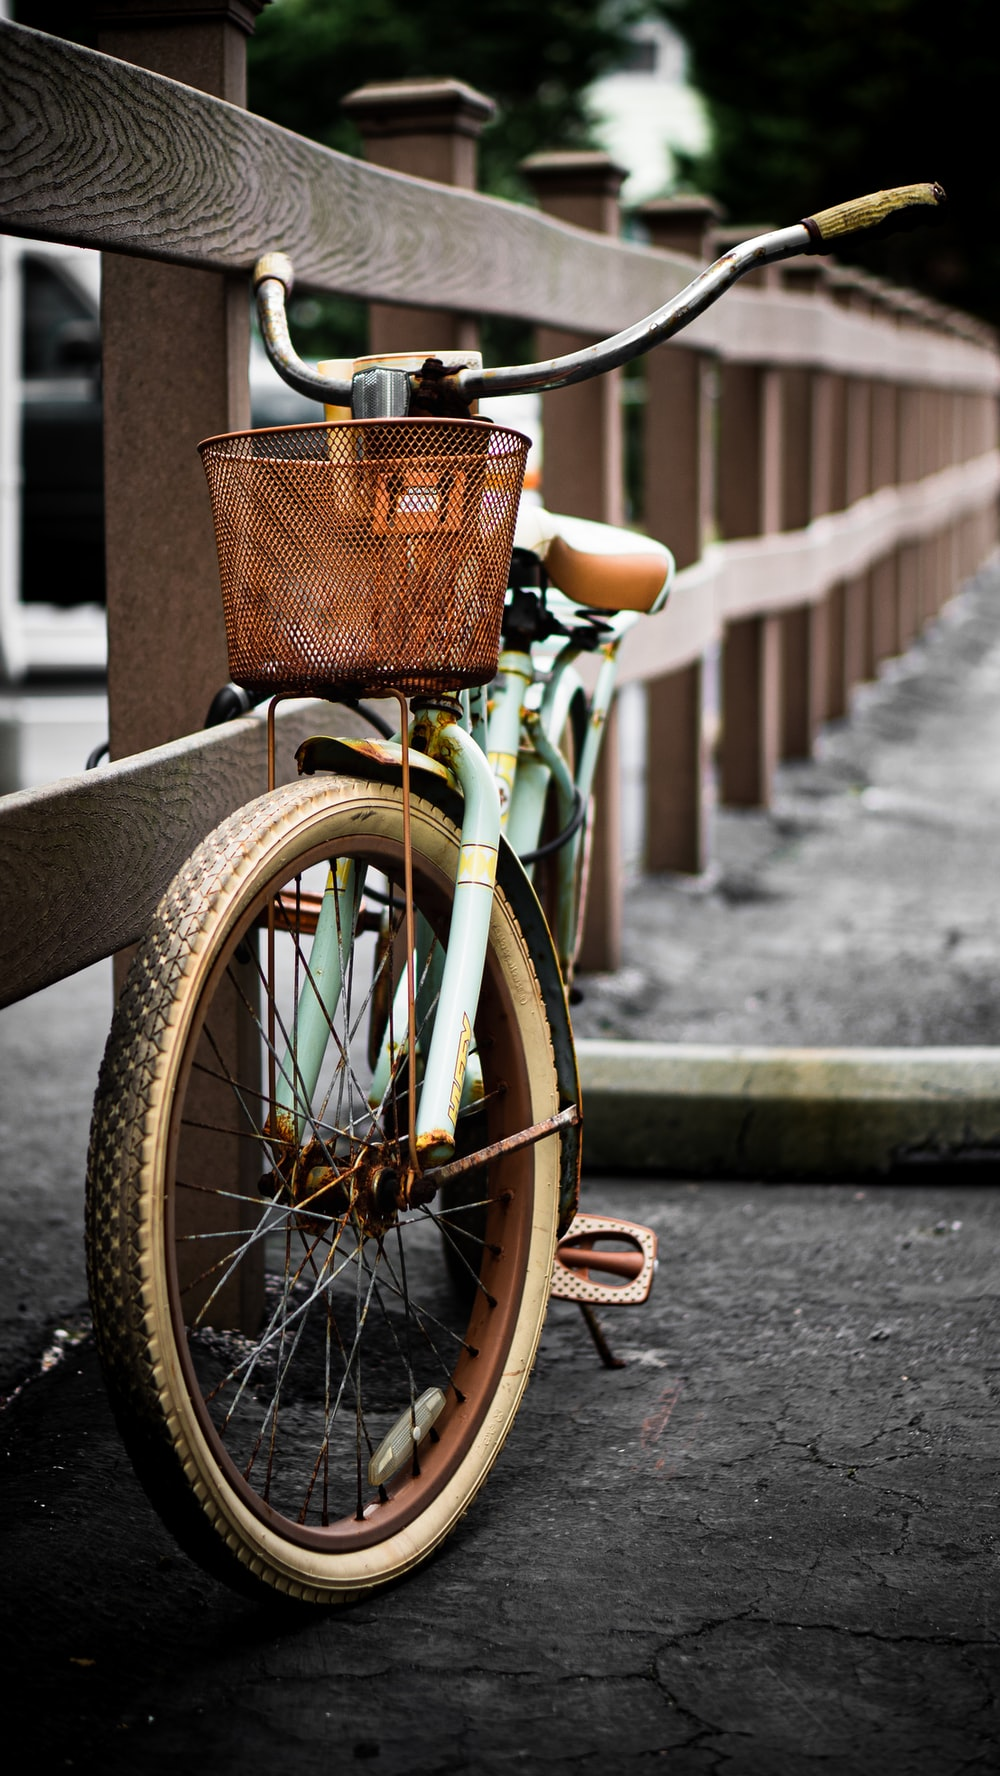 brown city bike on gray concrete road during daytime